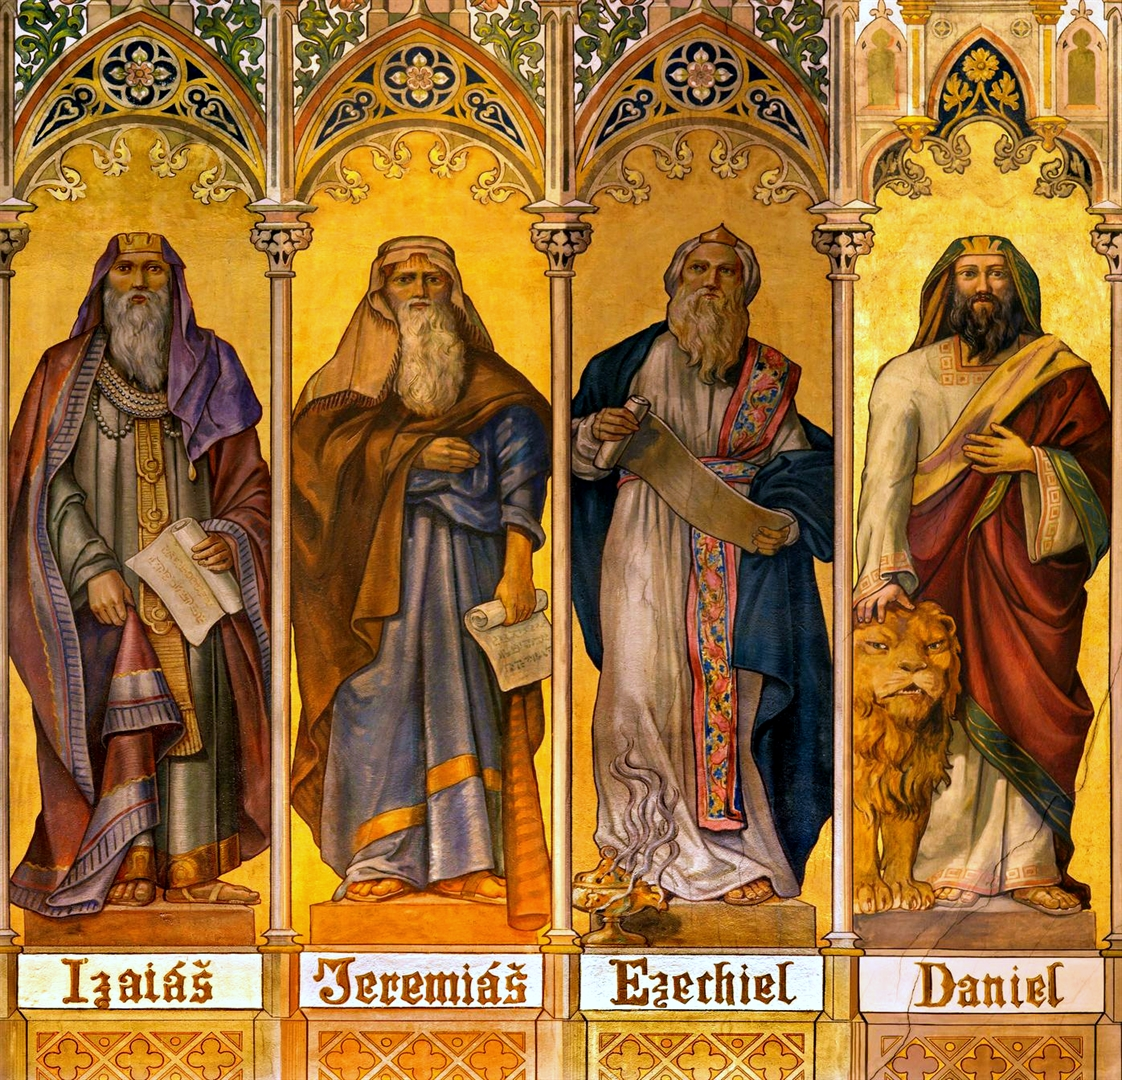 Travna fresco of the prophets Isaiah, Jeremiah, Ezekiel, and Daniel, by Leopold Bruckner